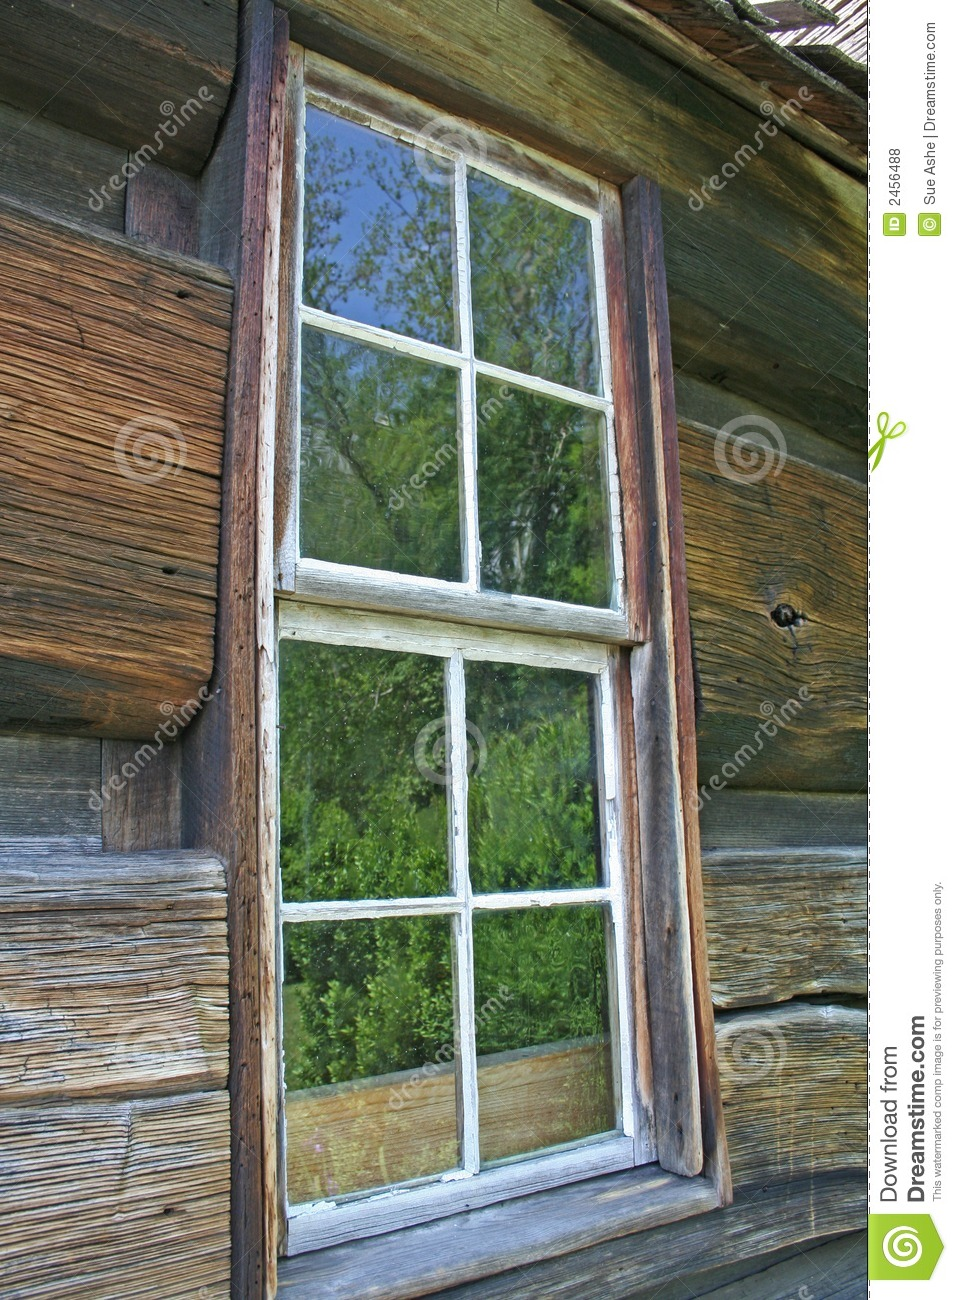 Log cabin window royalty free stock photos image 2456488 for Windows for log cabins